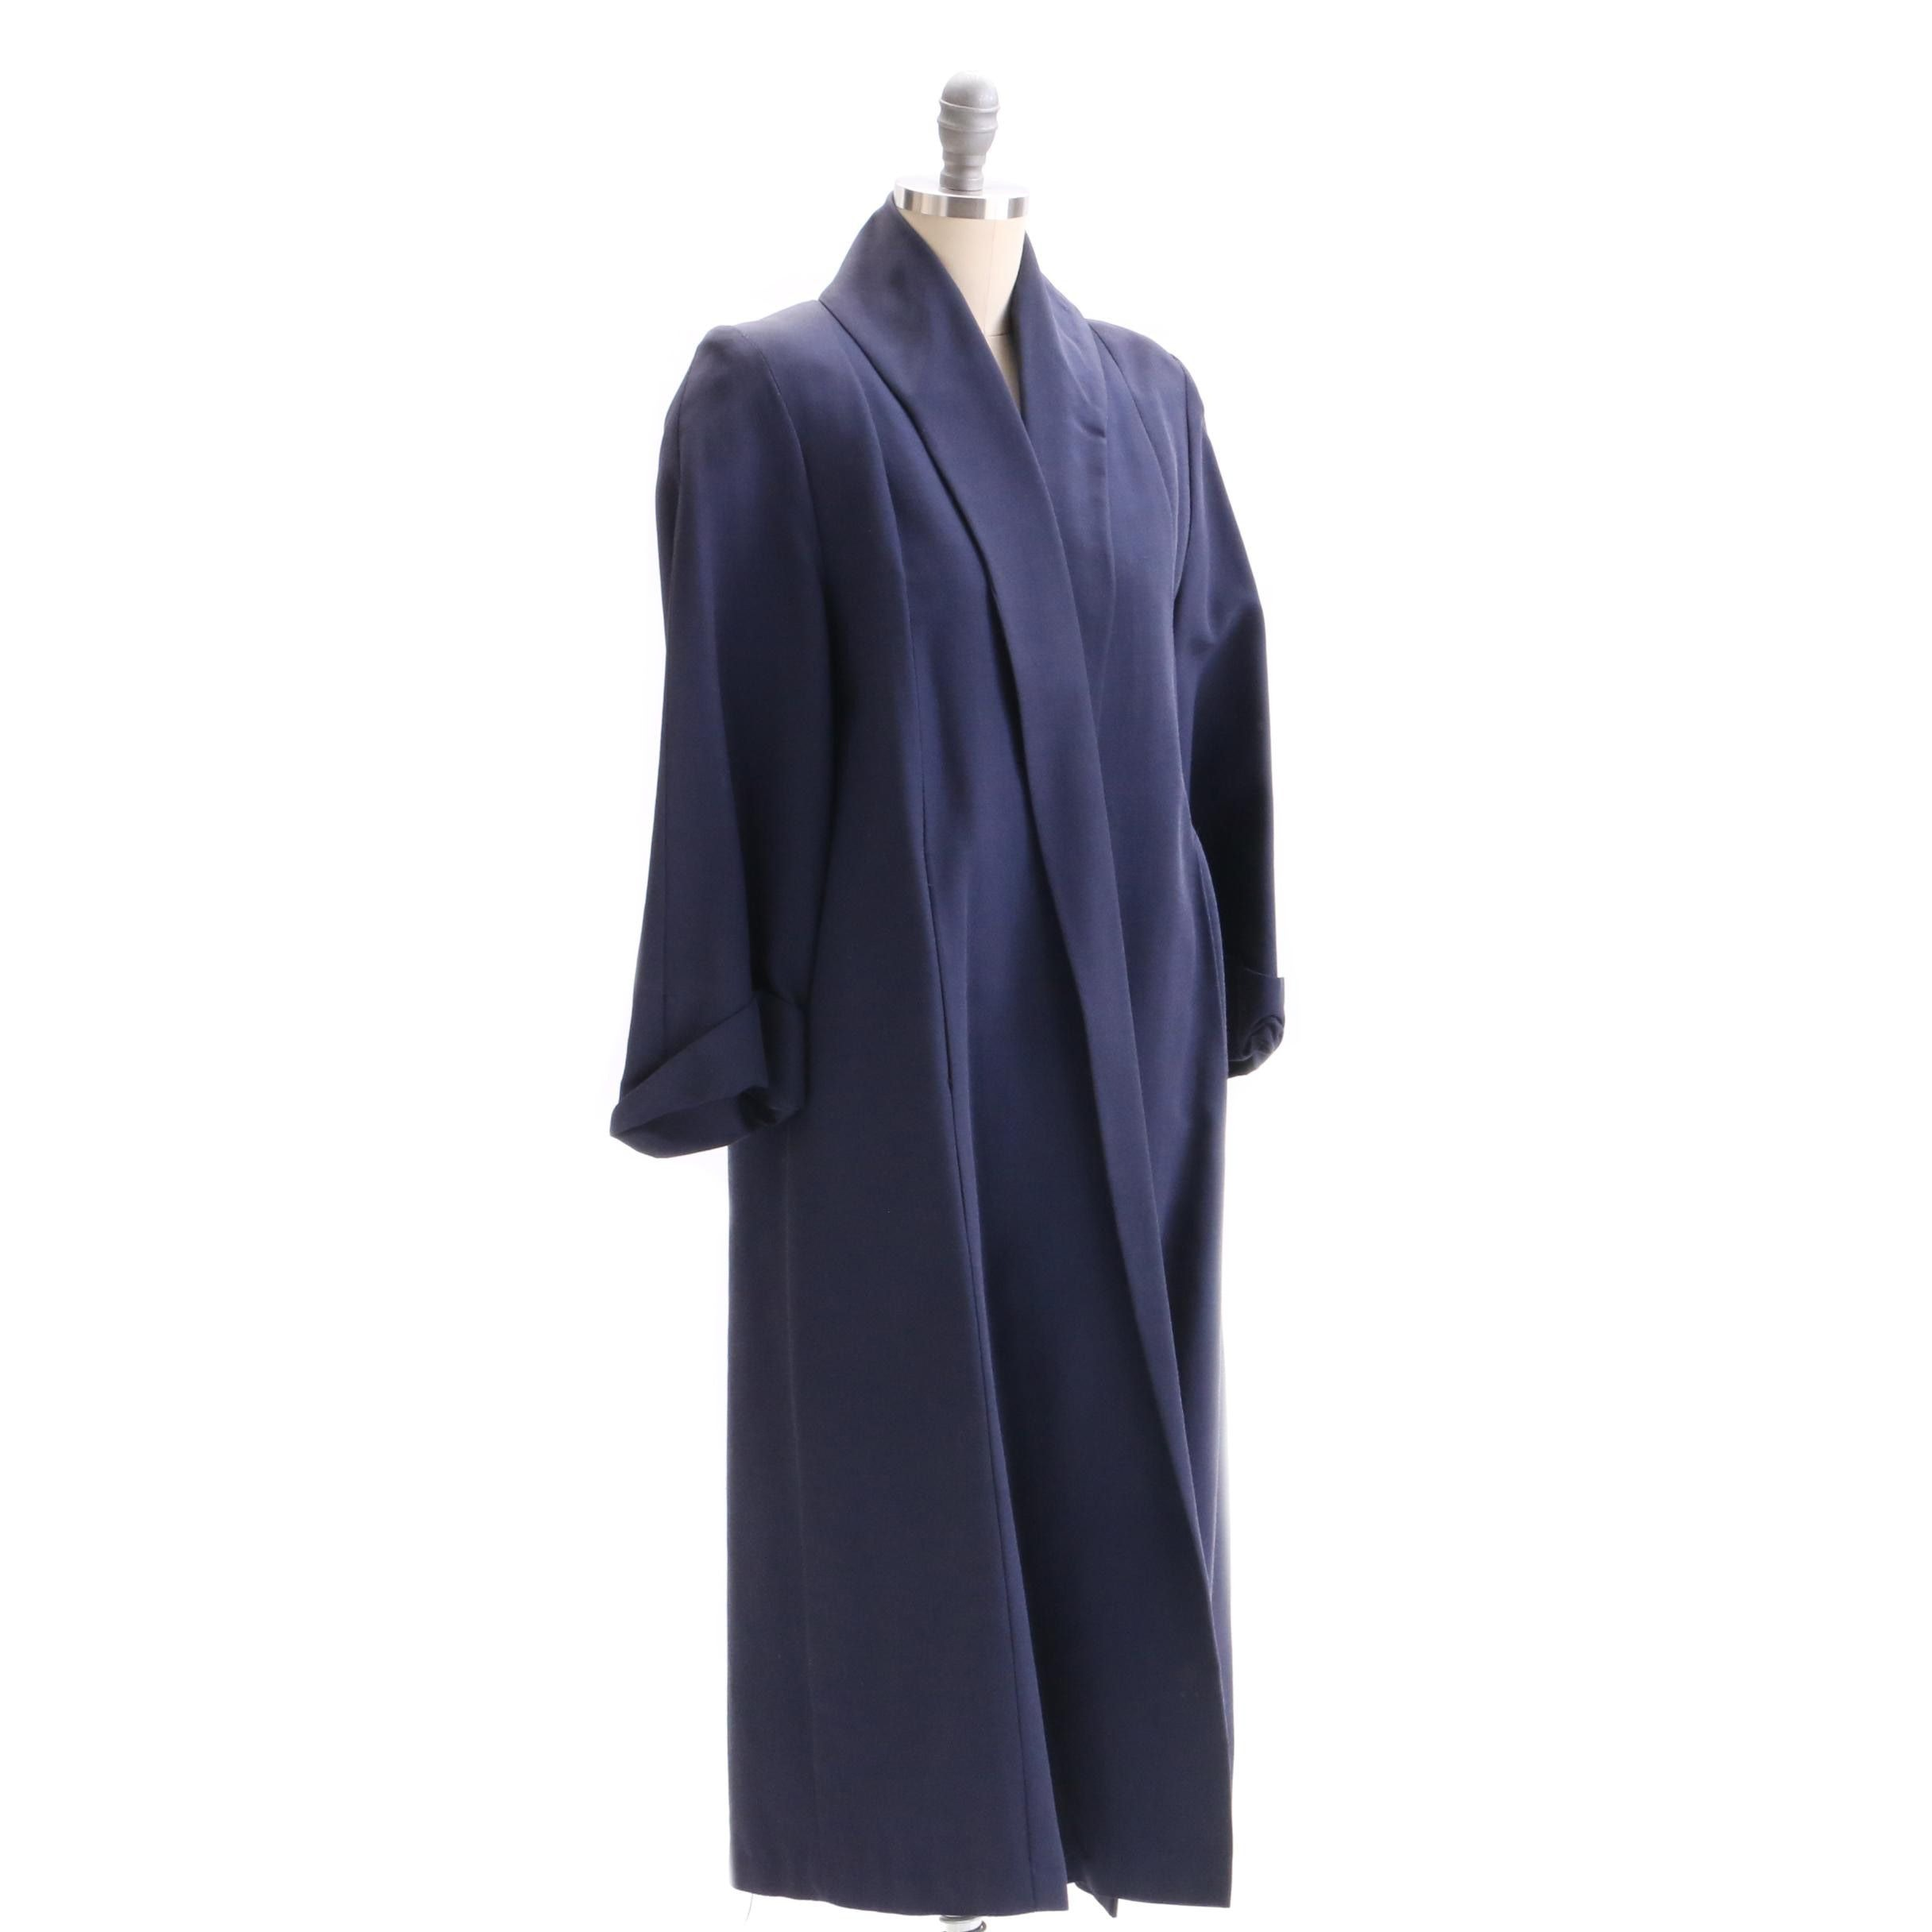 Circa 1950s Vintage Navy Blue Grosgrain Swing Coat